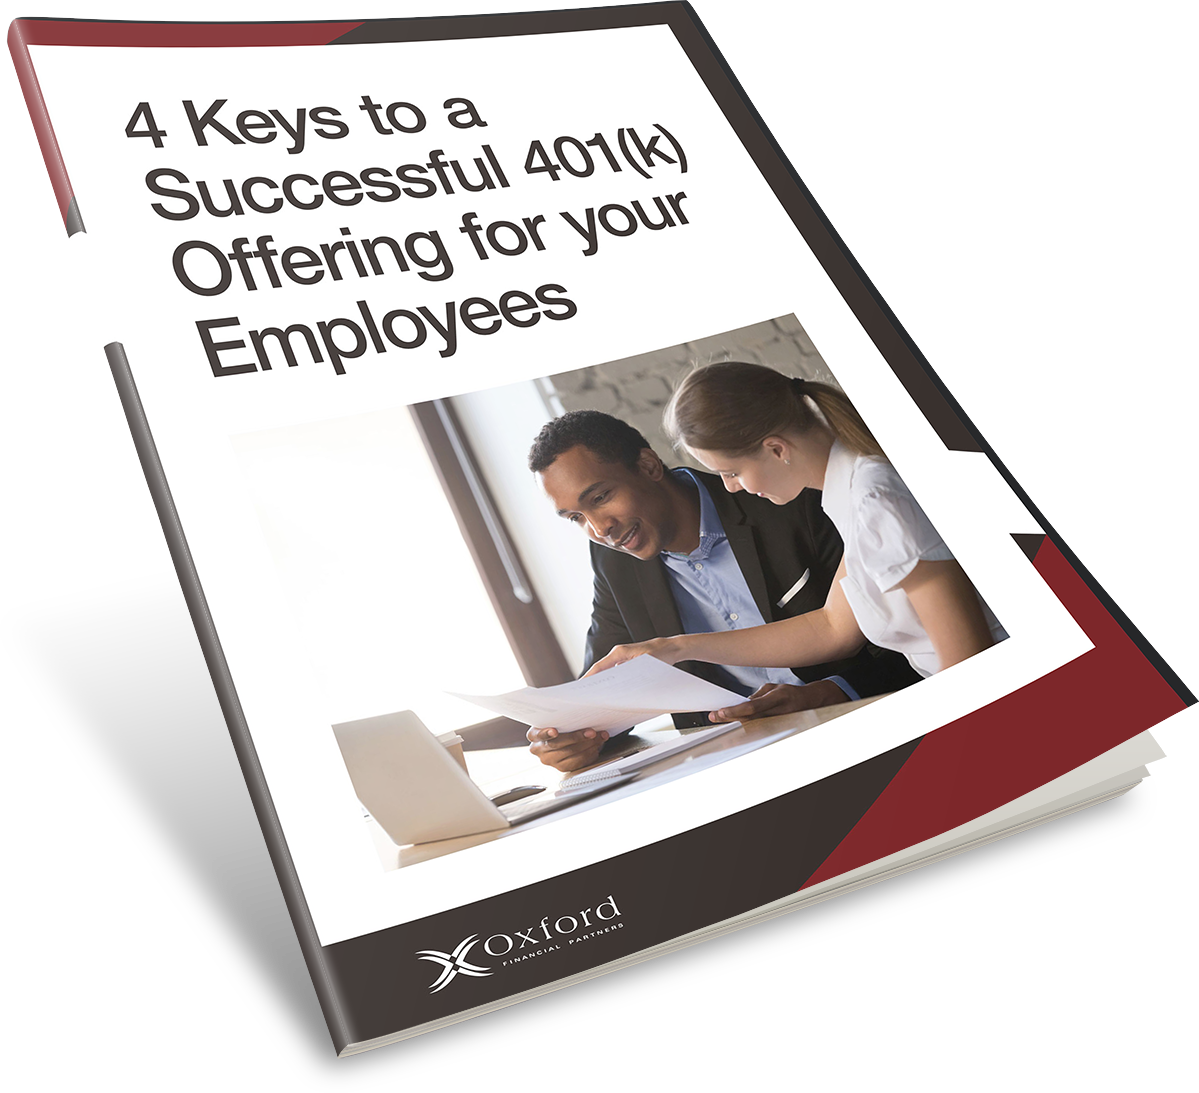 Download your free guide 4 keys to a successful 401k offering Cincinnati, Ohio, Oxford Financial Partners